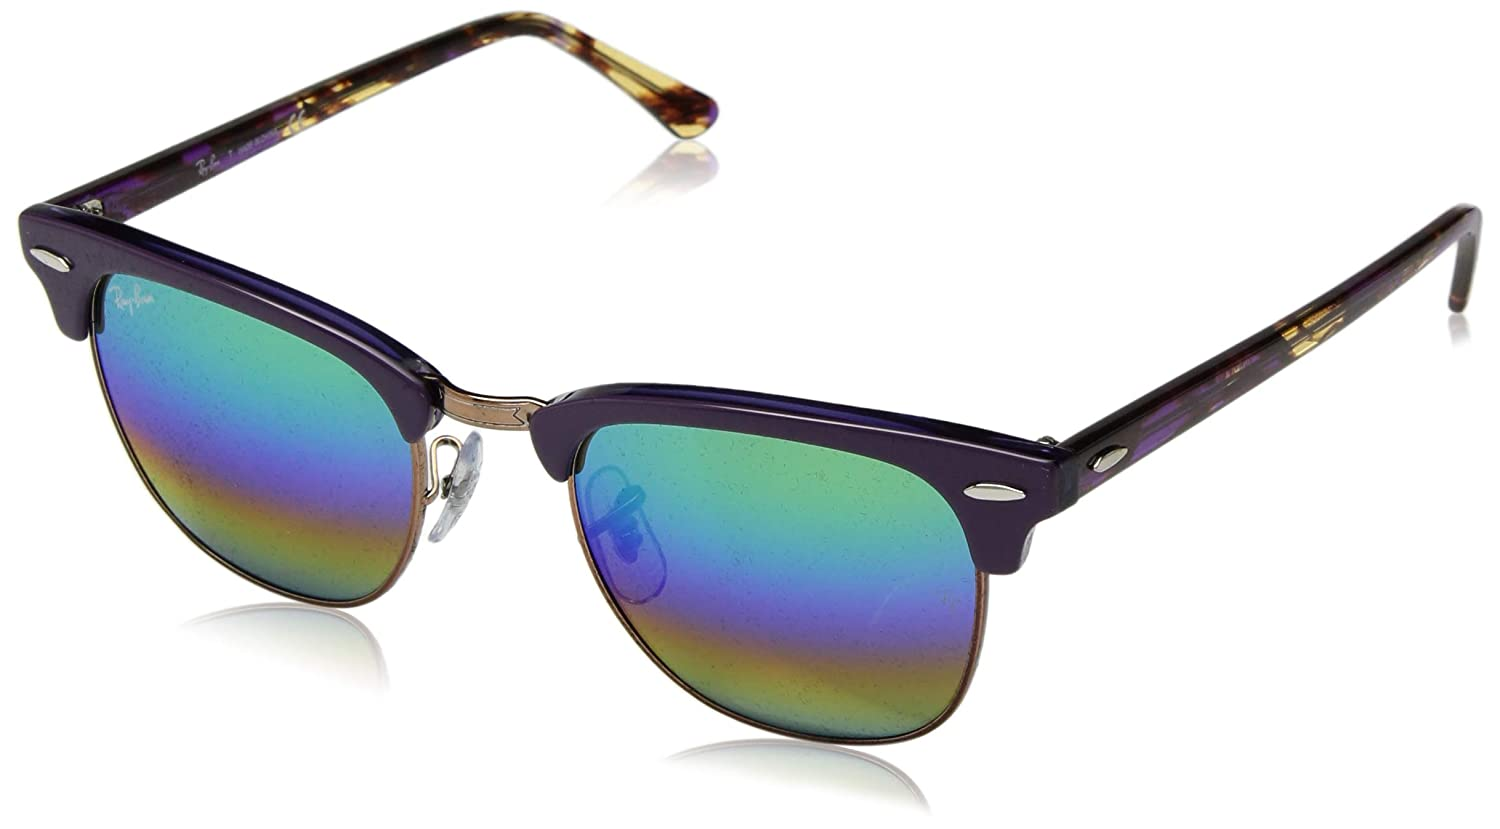 3ebf7de6caf1e Amazon.com  Ray-Ban RB3016 Classic Clubmaster Sunglasses  Clothing